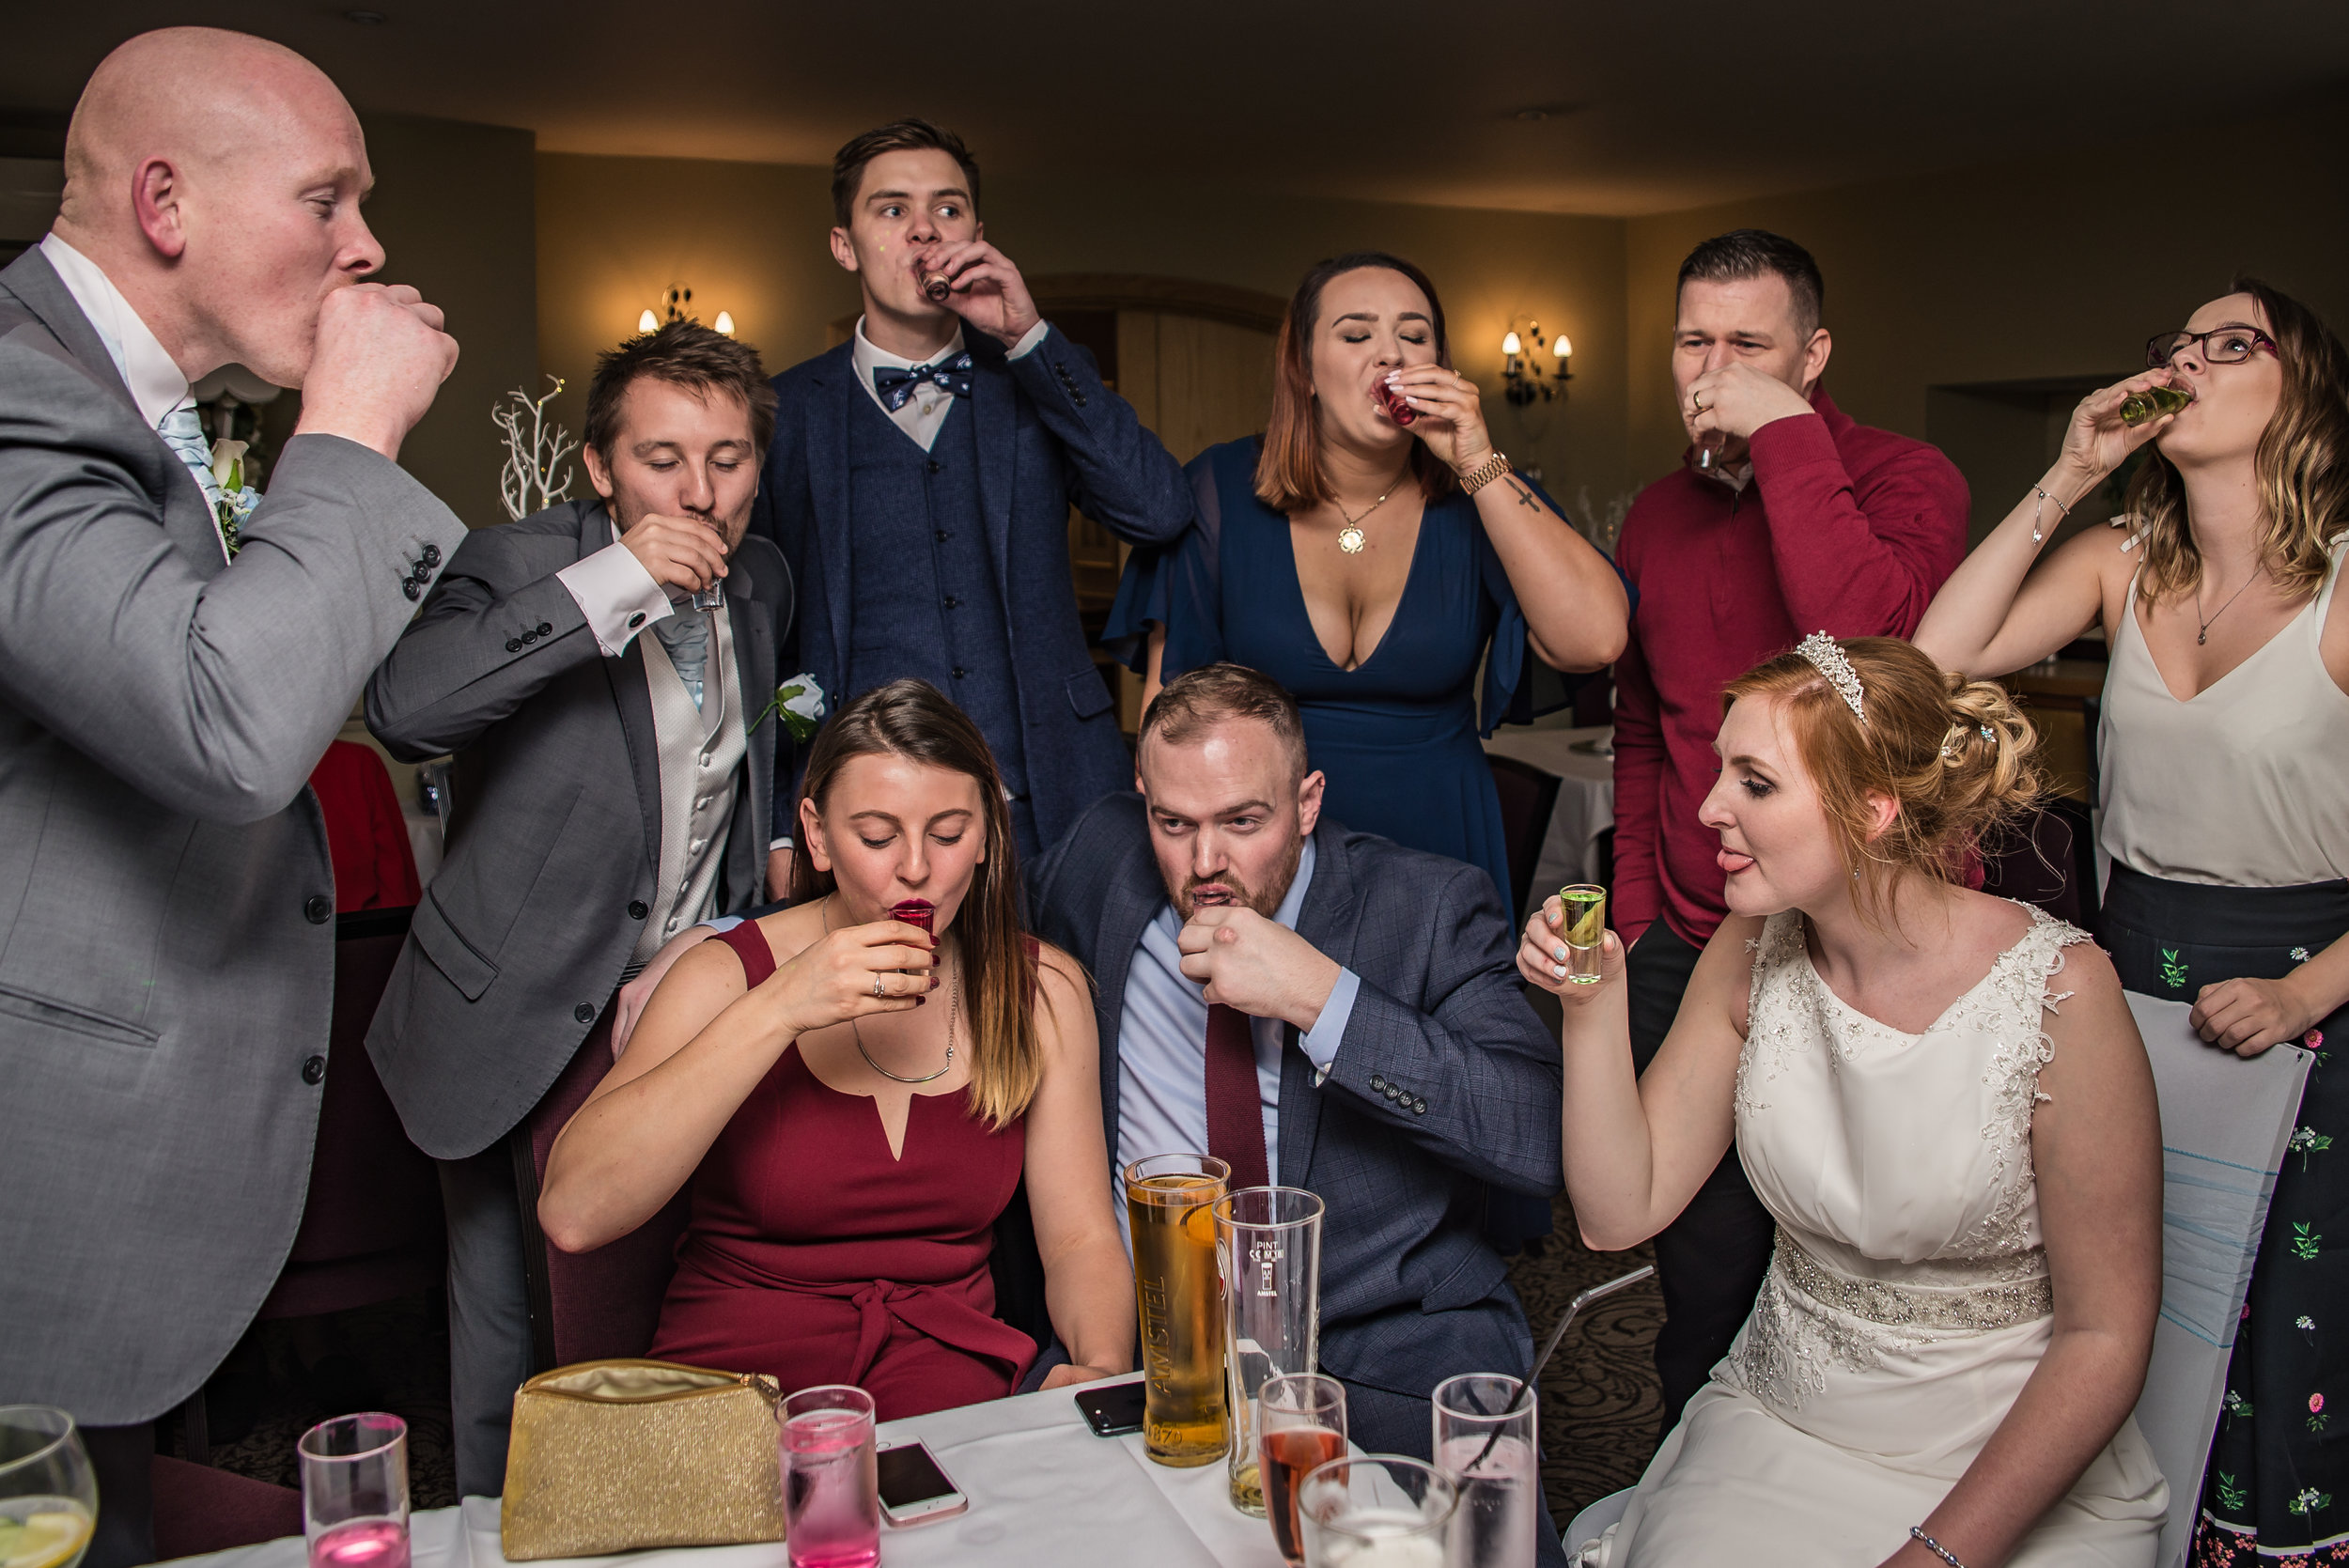 wedding photography and wedding videography, drink, drink, drink, drink